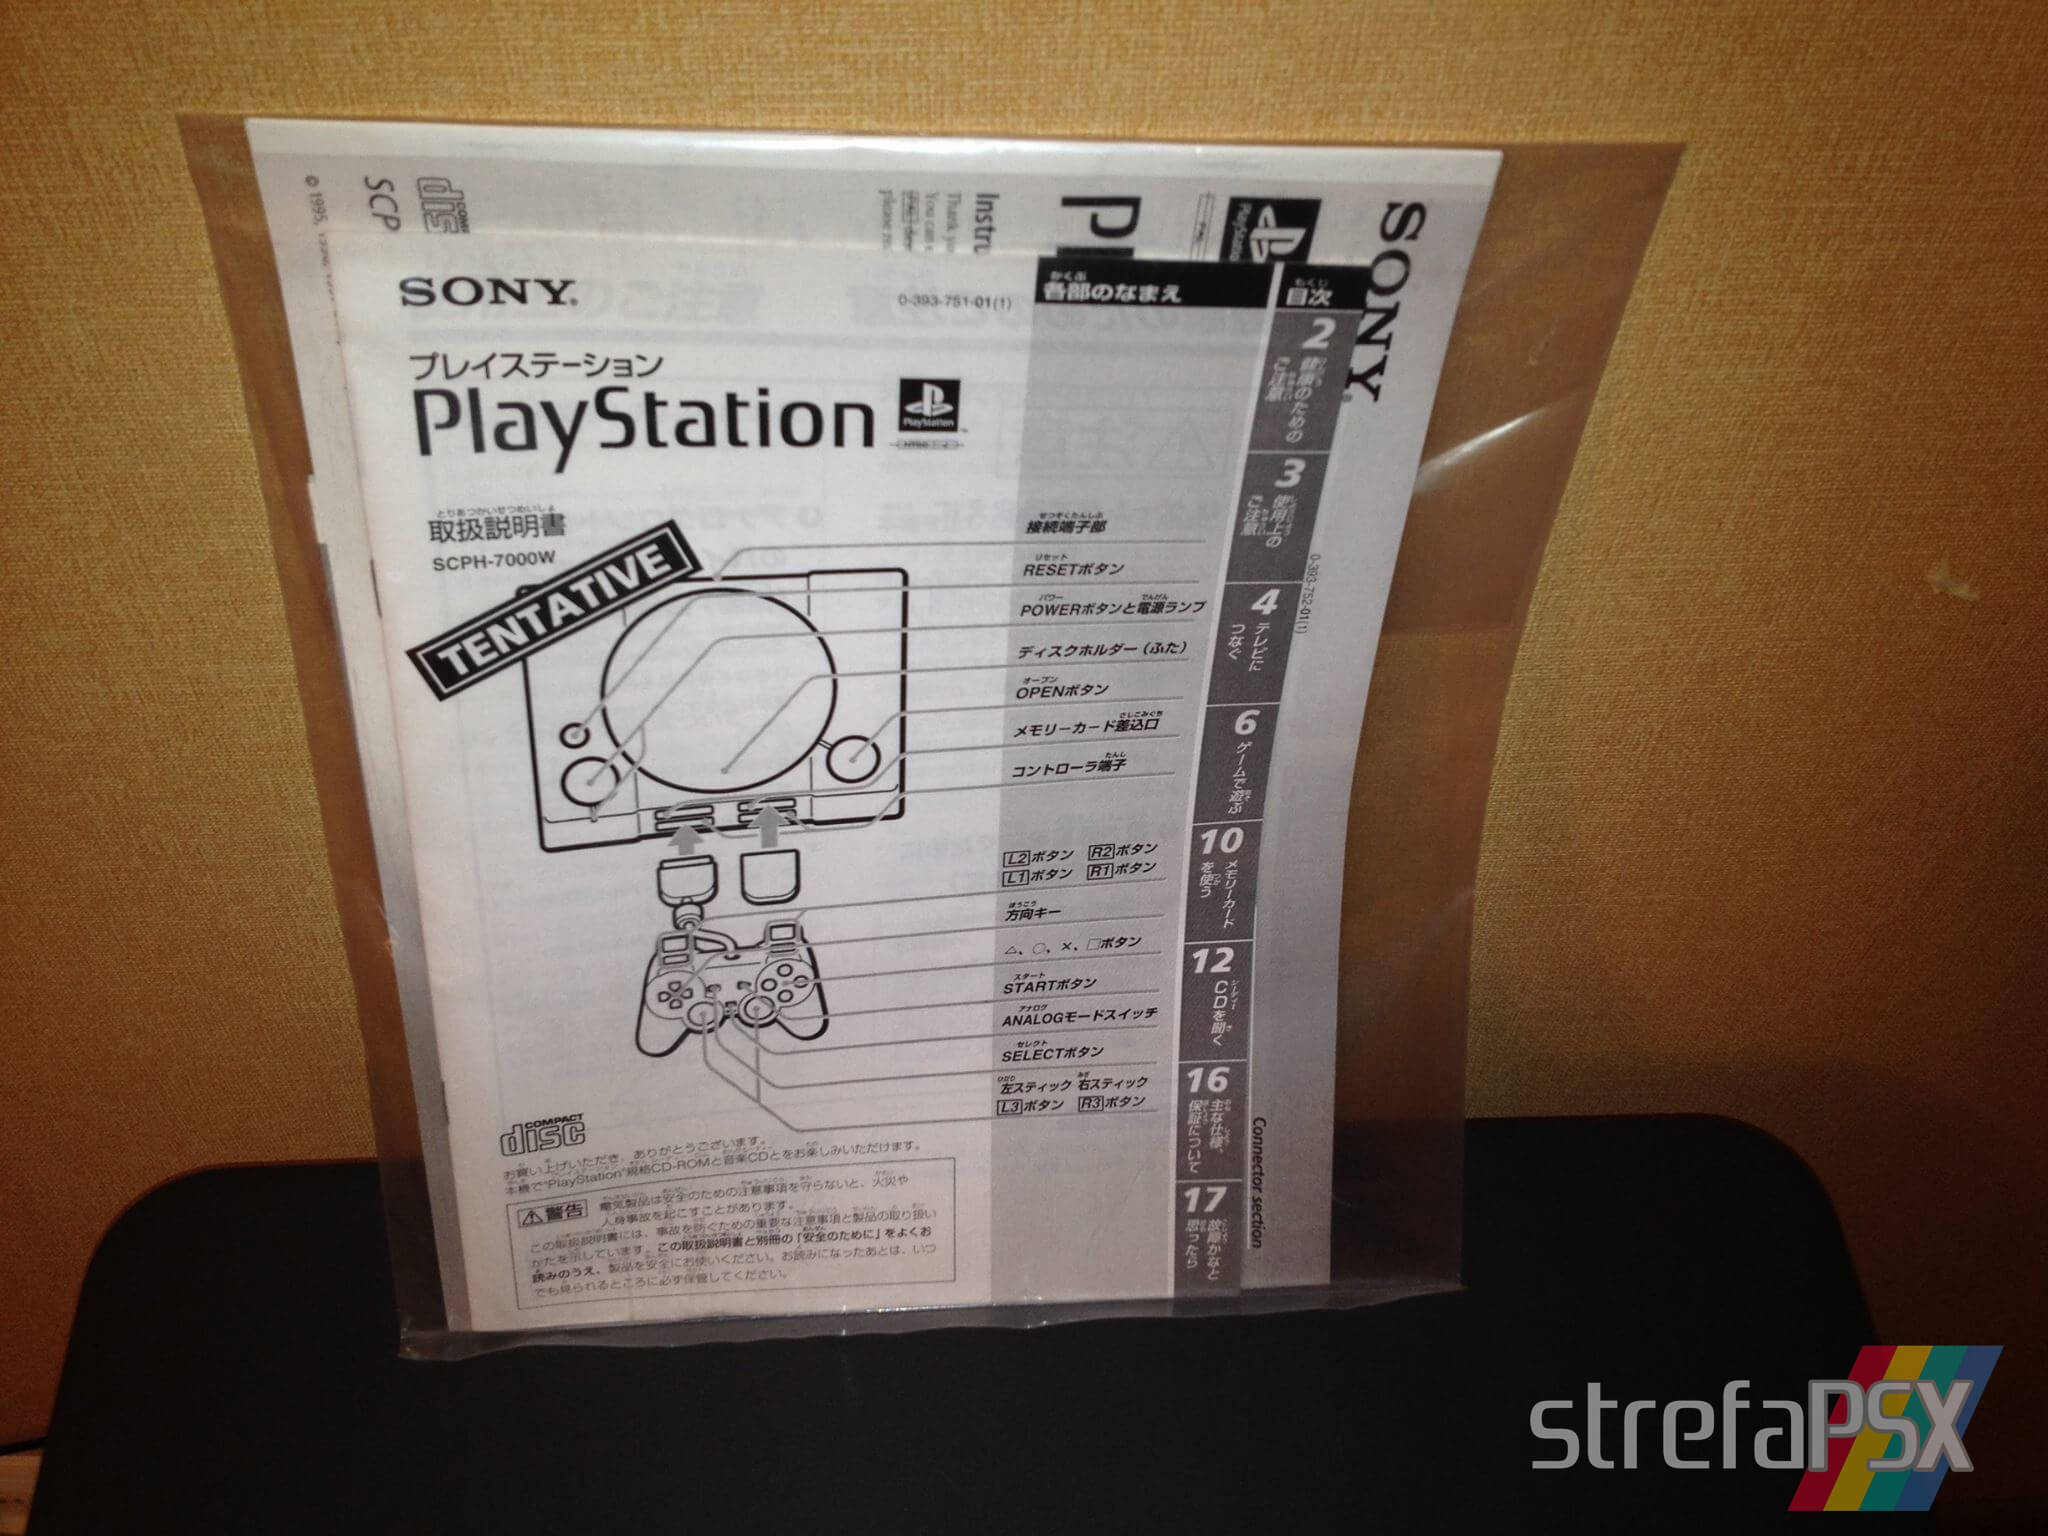 playstation 10 million model scph 7000W13 - [SCPH-700x] PlayStation 10 Million Model